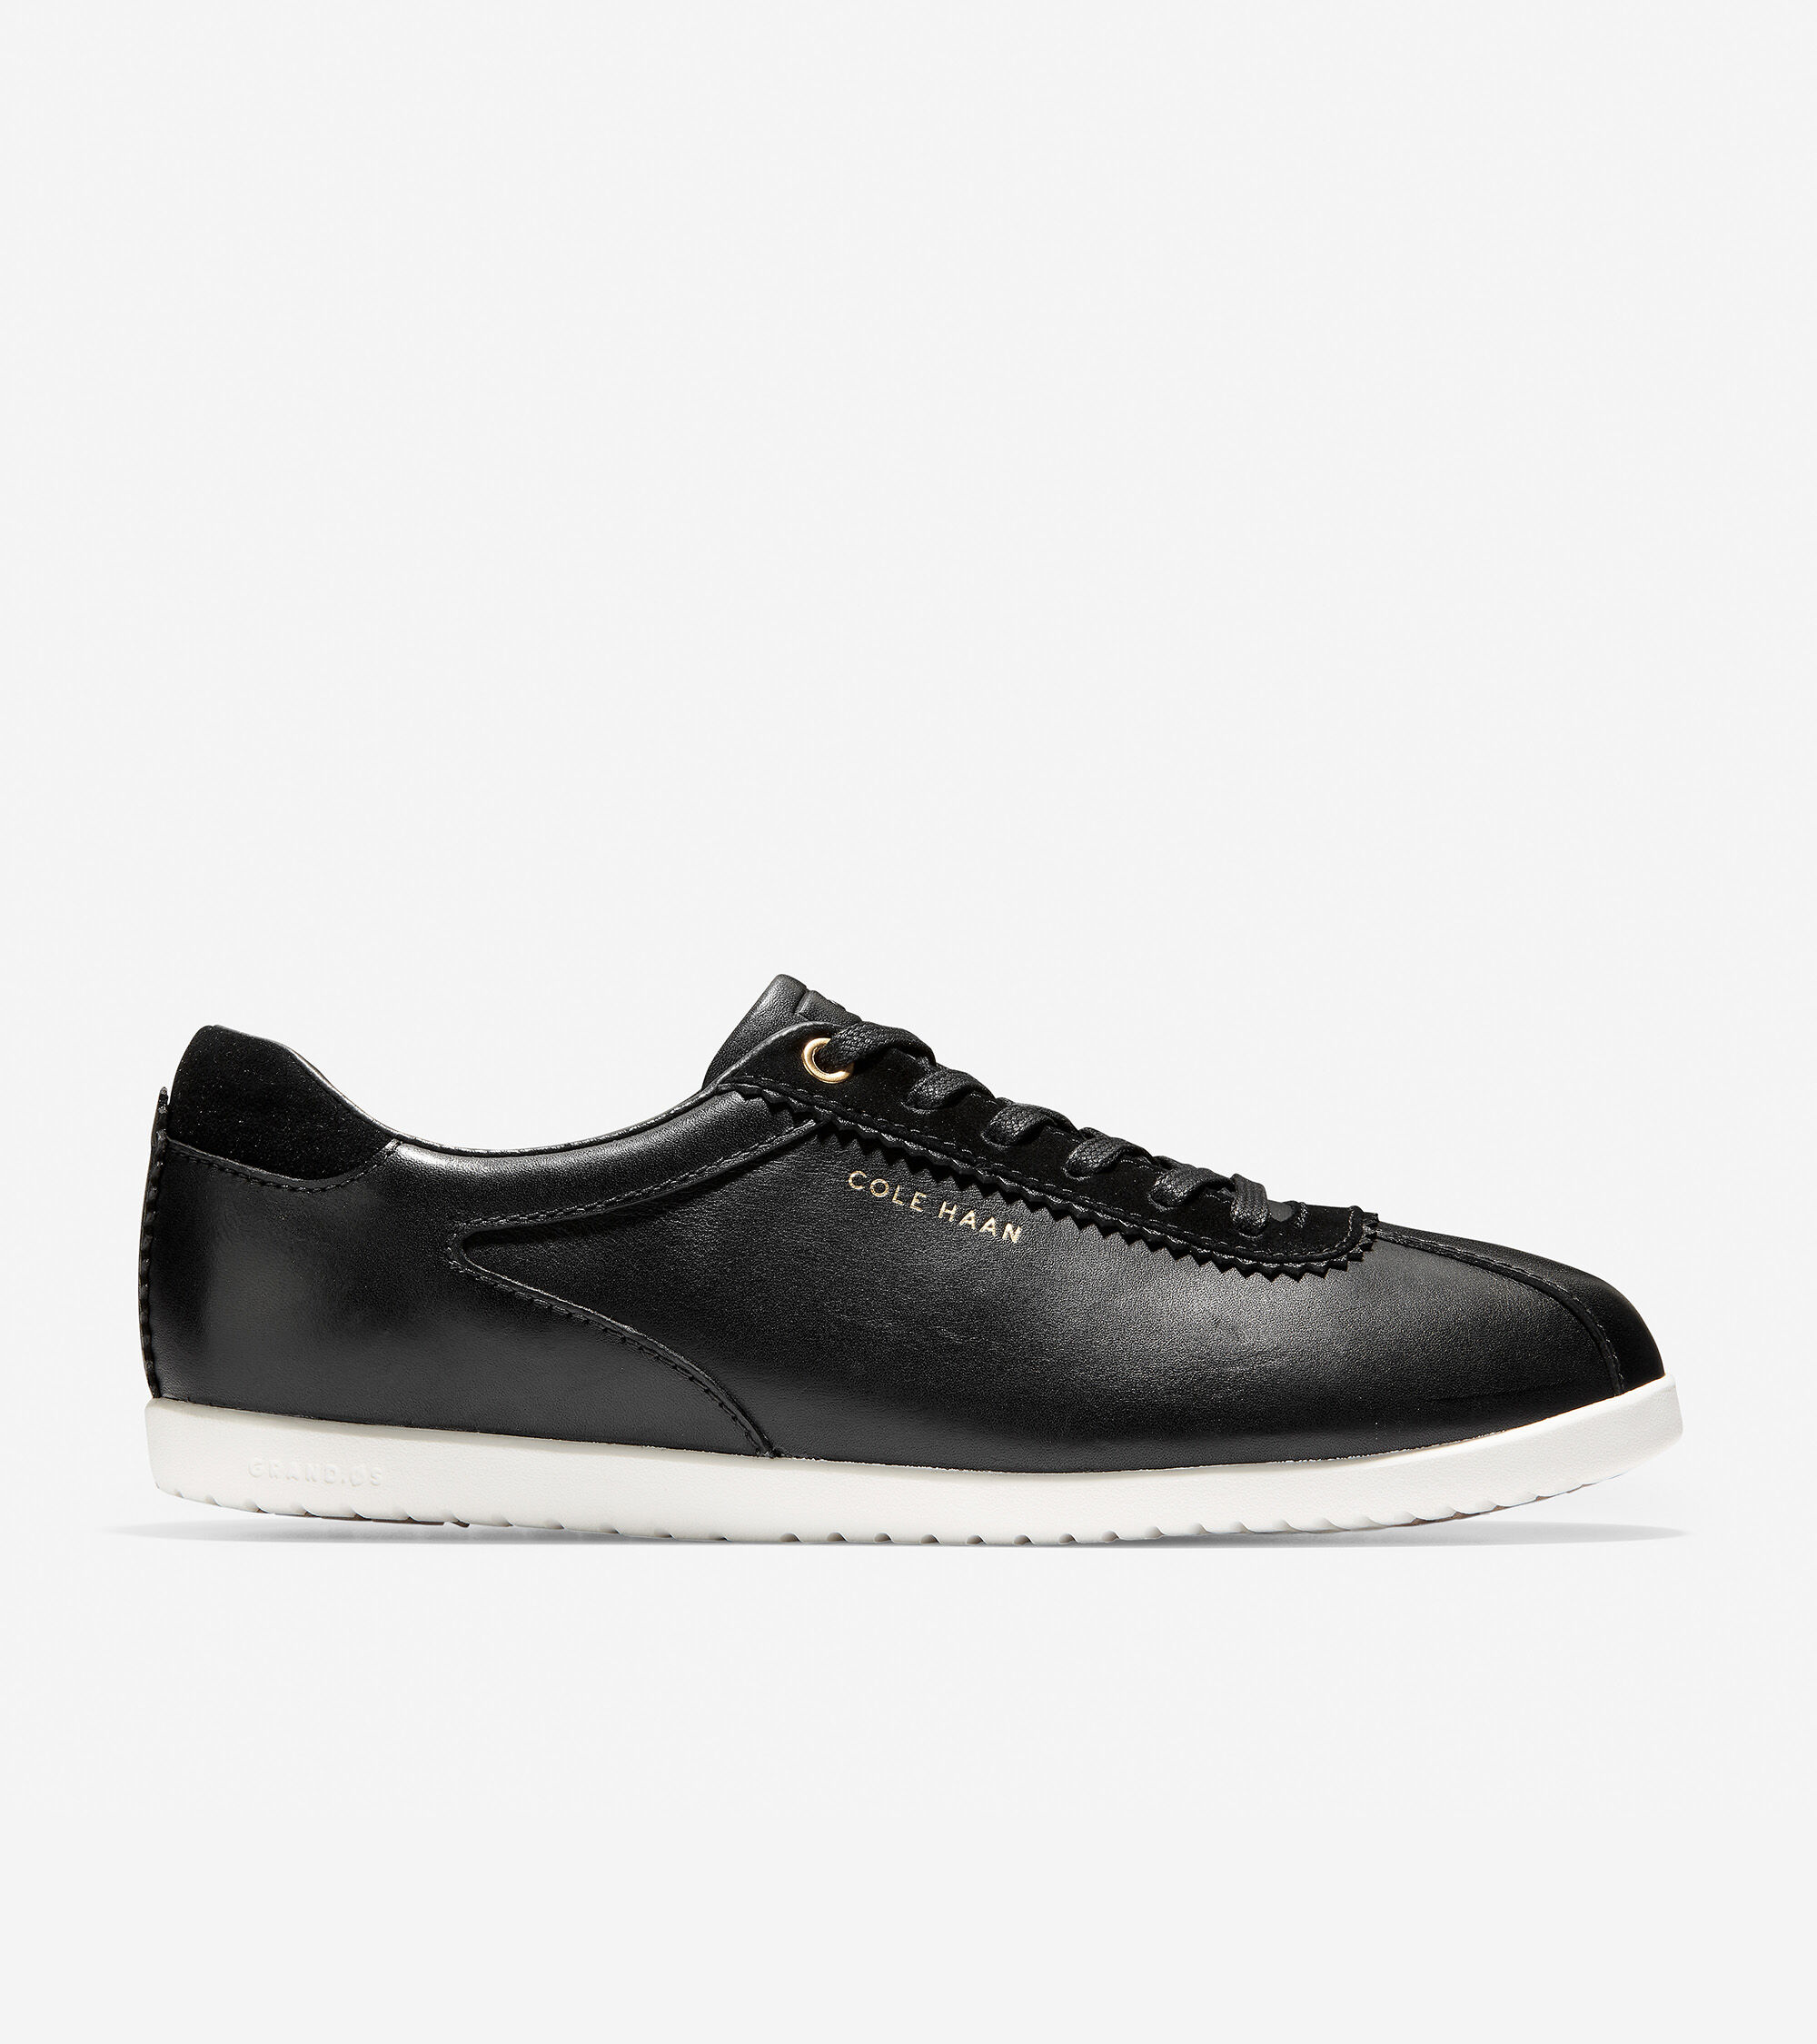 Black Leather-optic White | Cole Haan